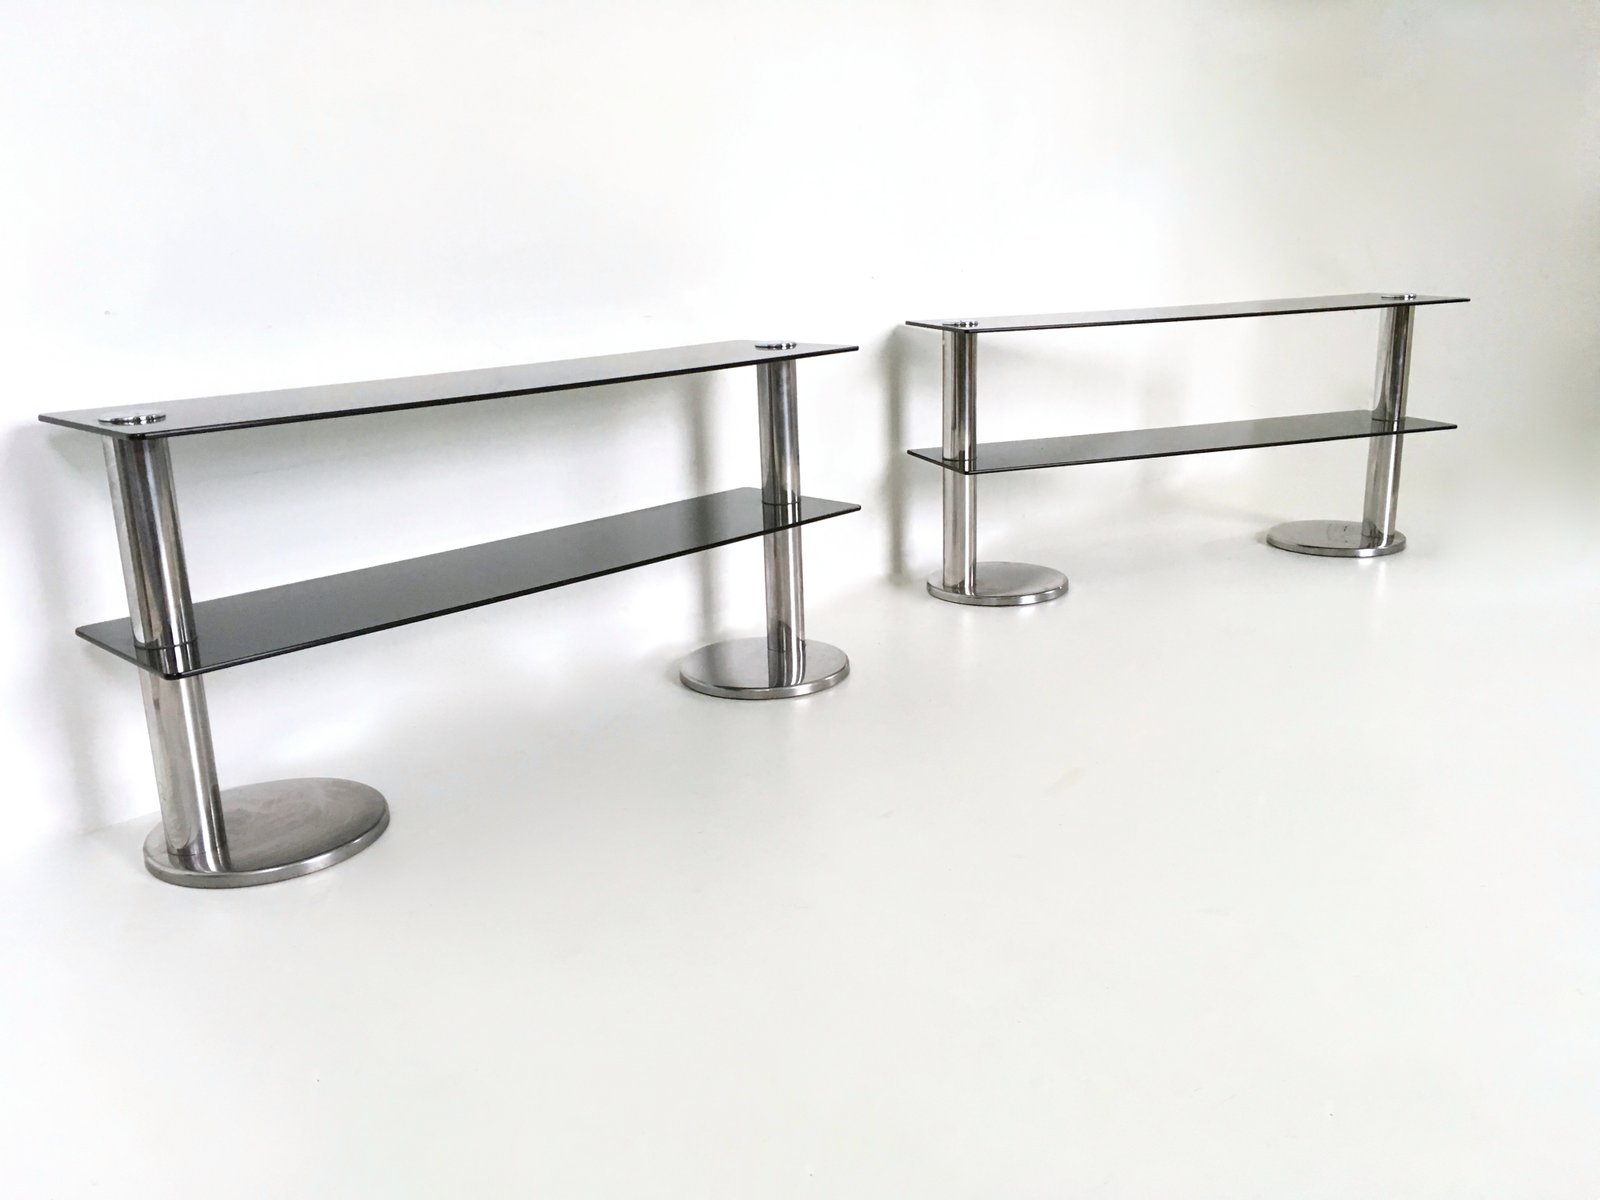 Metal and glass console tables 1970s set of 2 for sale for Metal and glass console tables